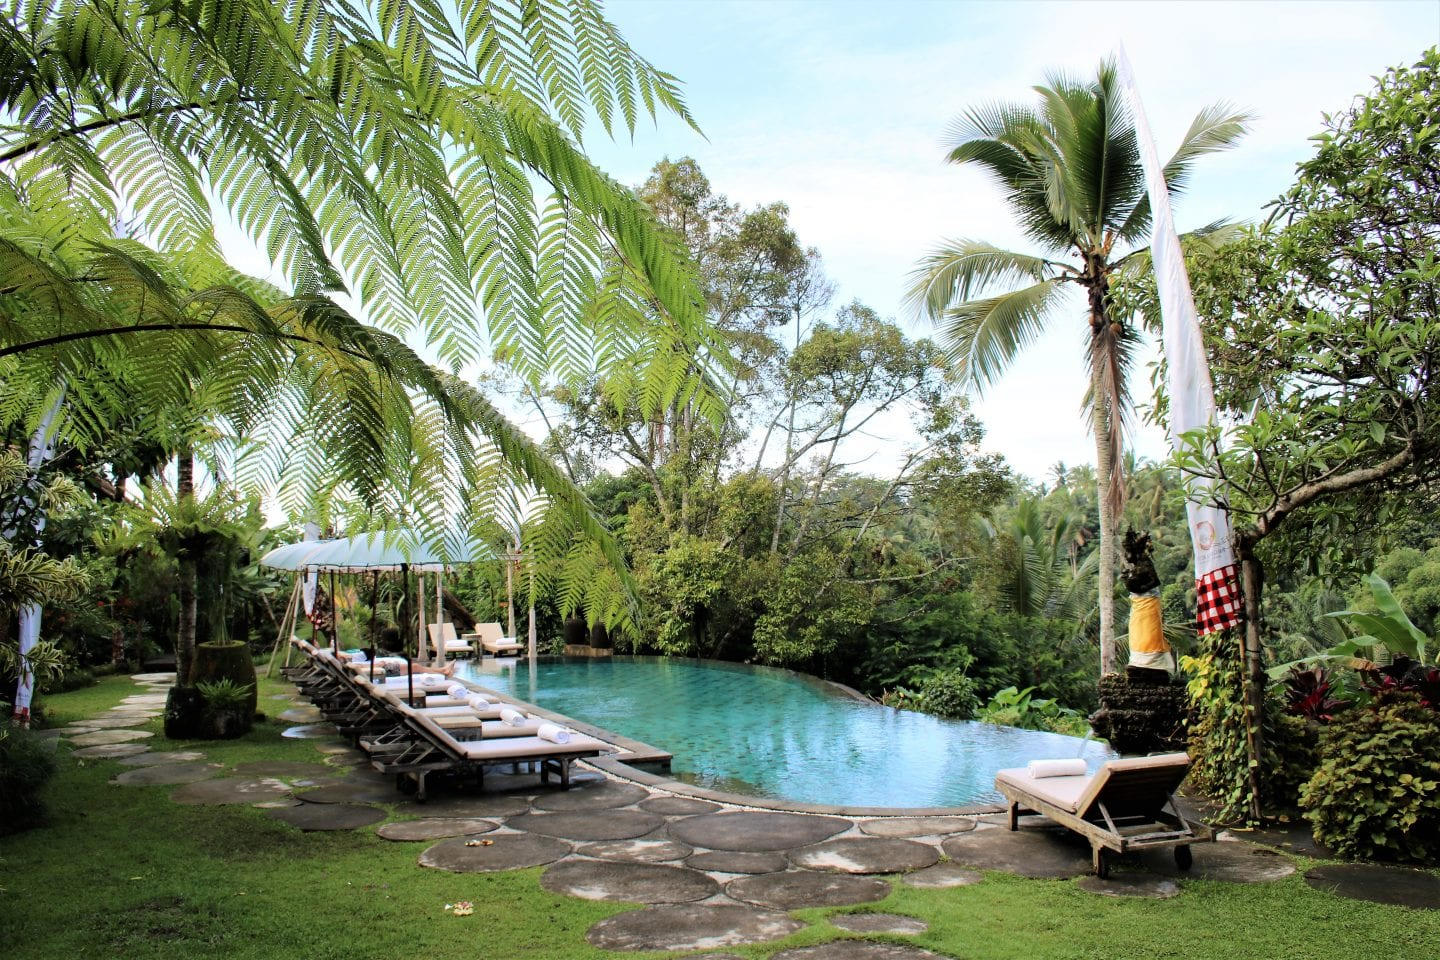 Checking In: Puri Gangga Resort, Ubud Bali